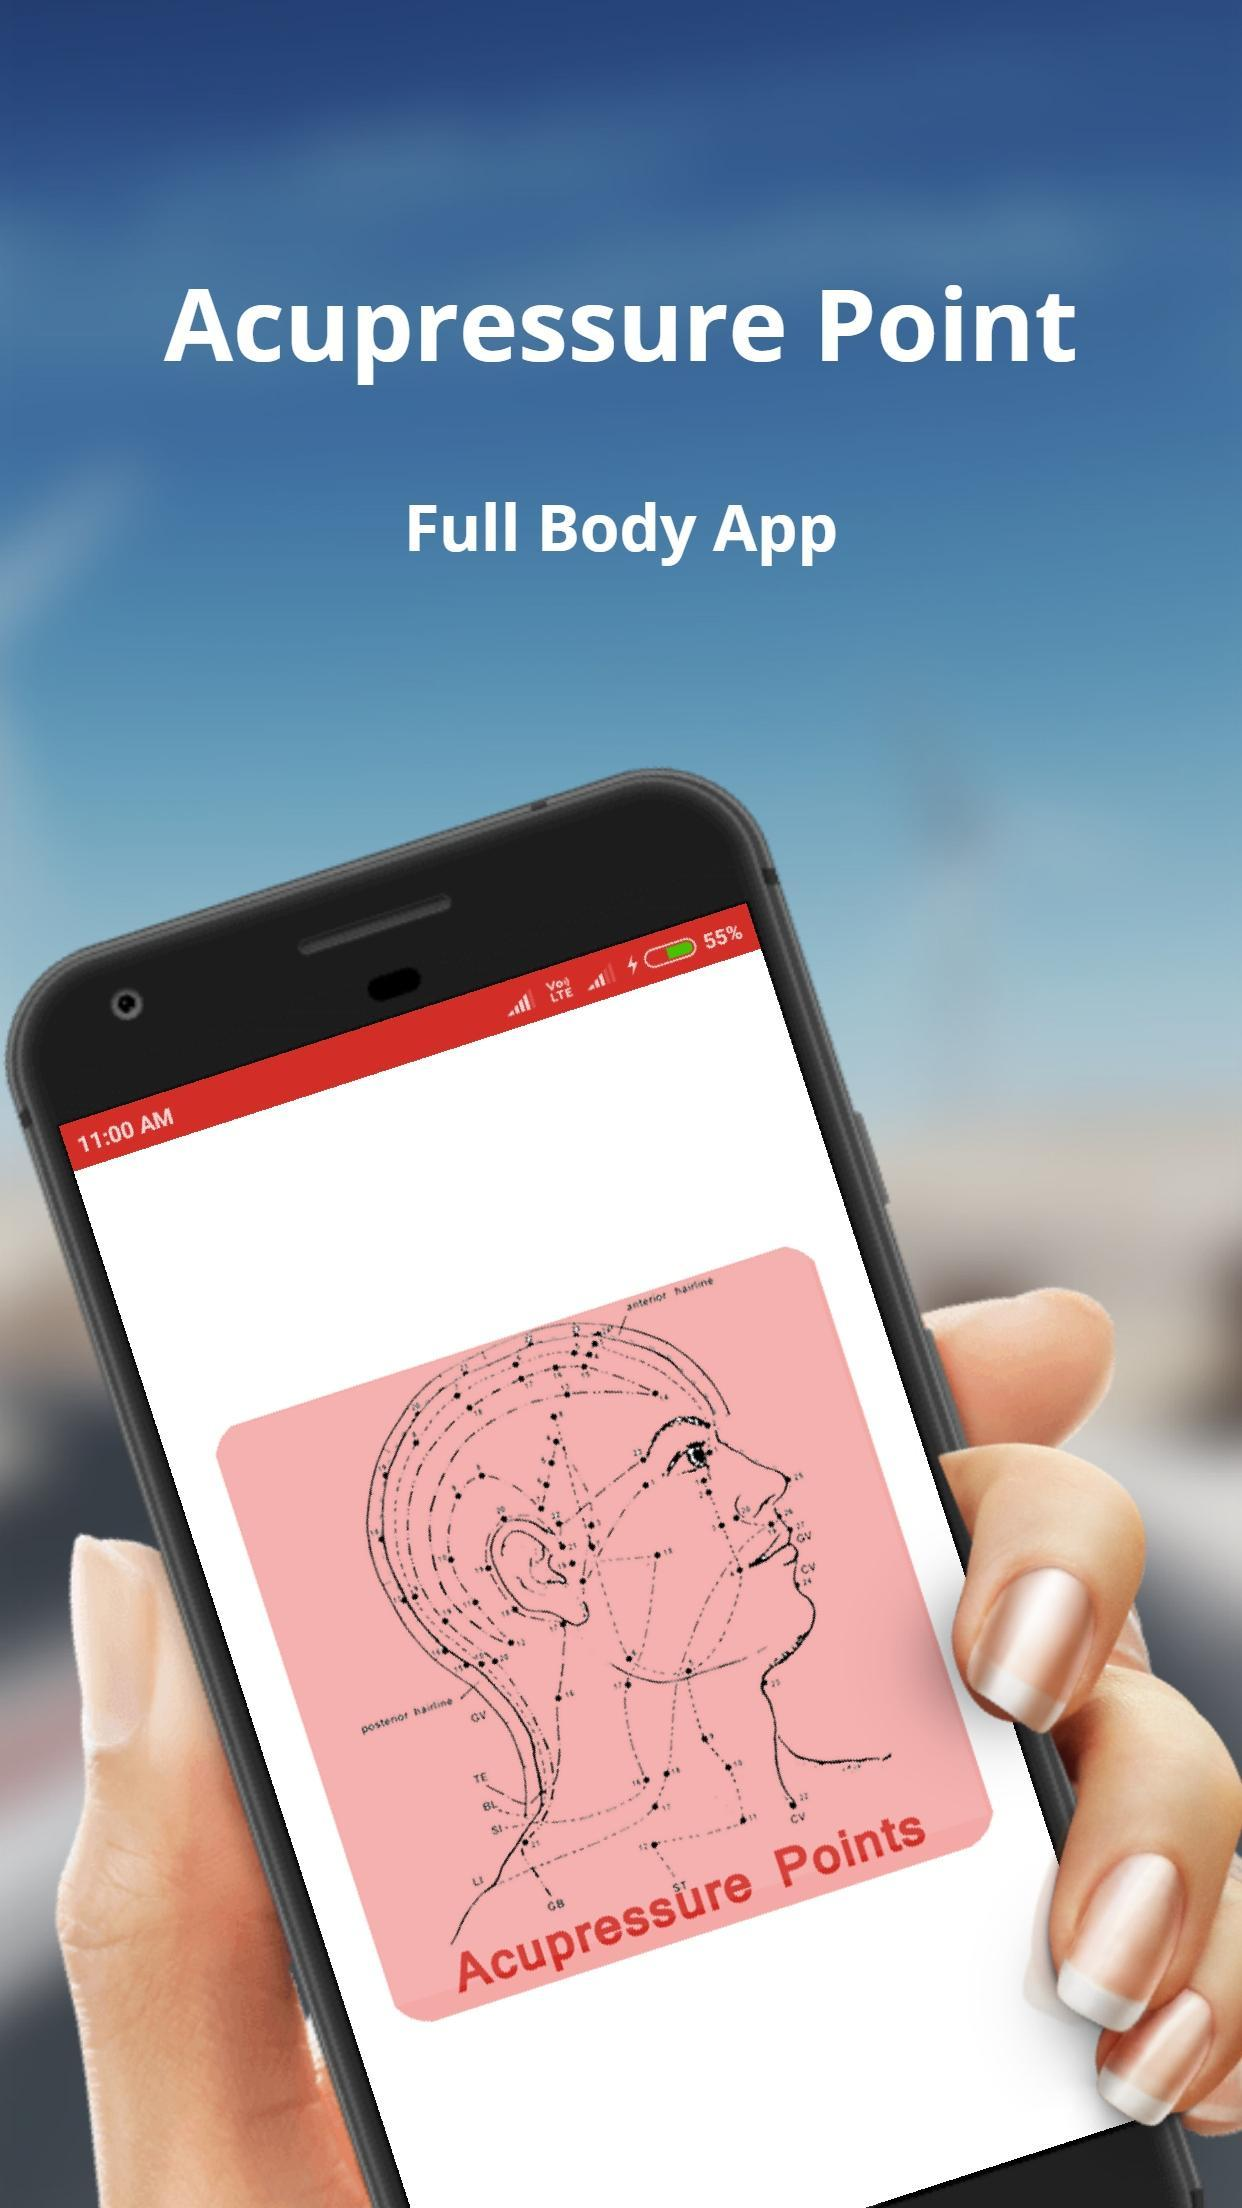 Acupressure Point for Android - APK Download